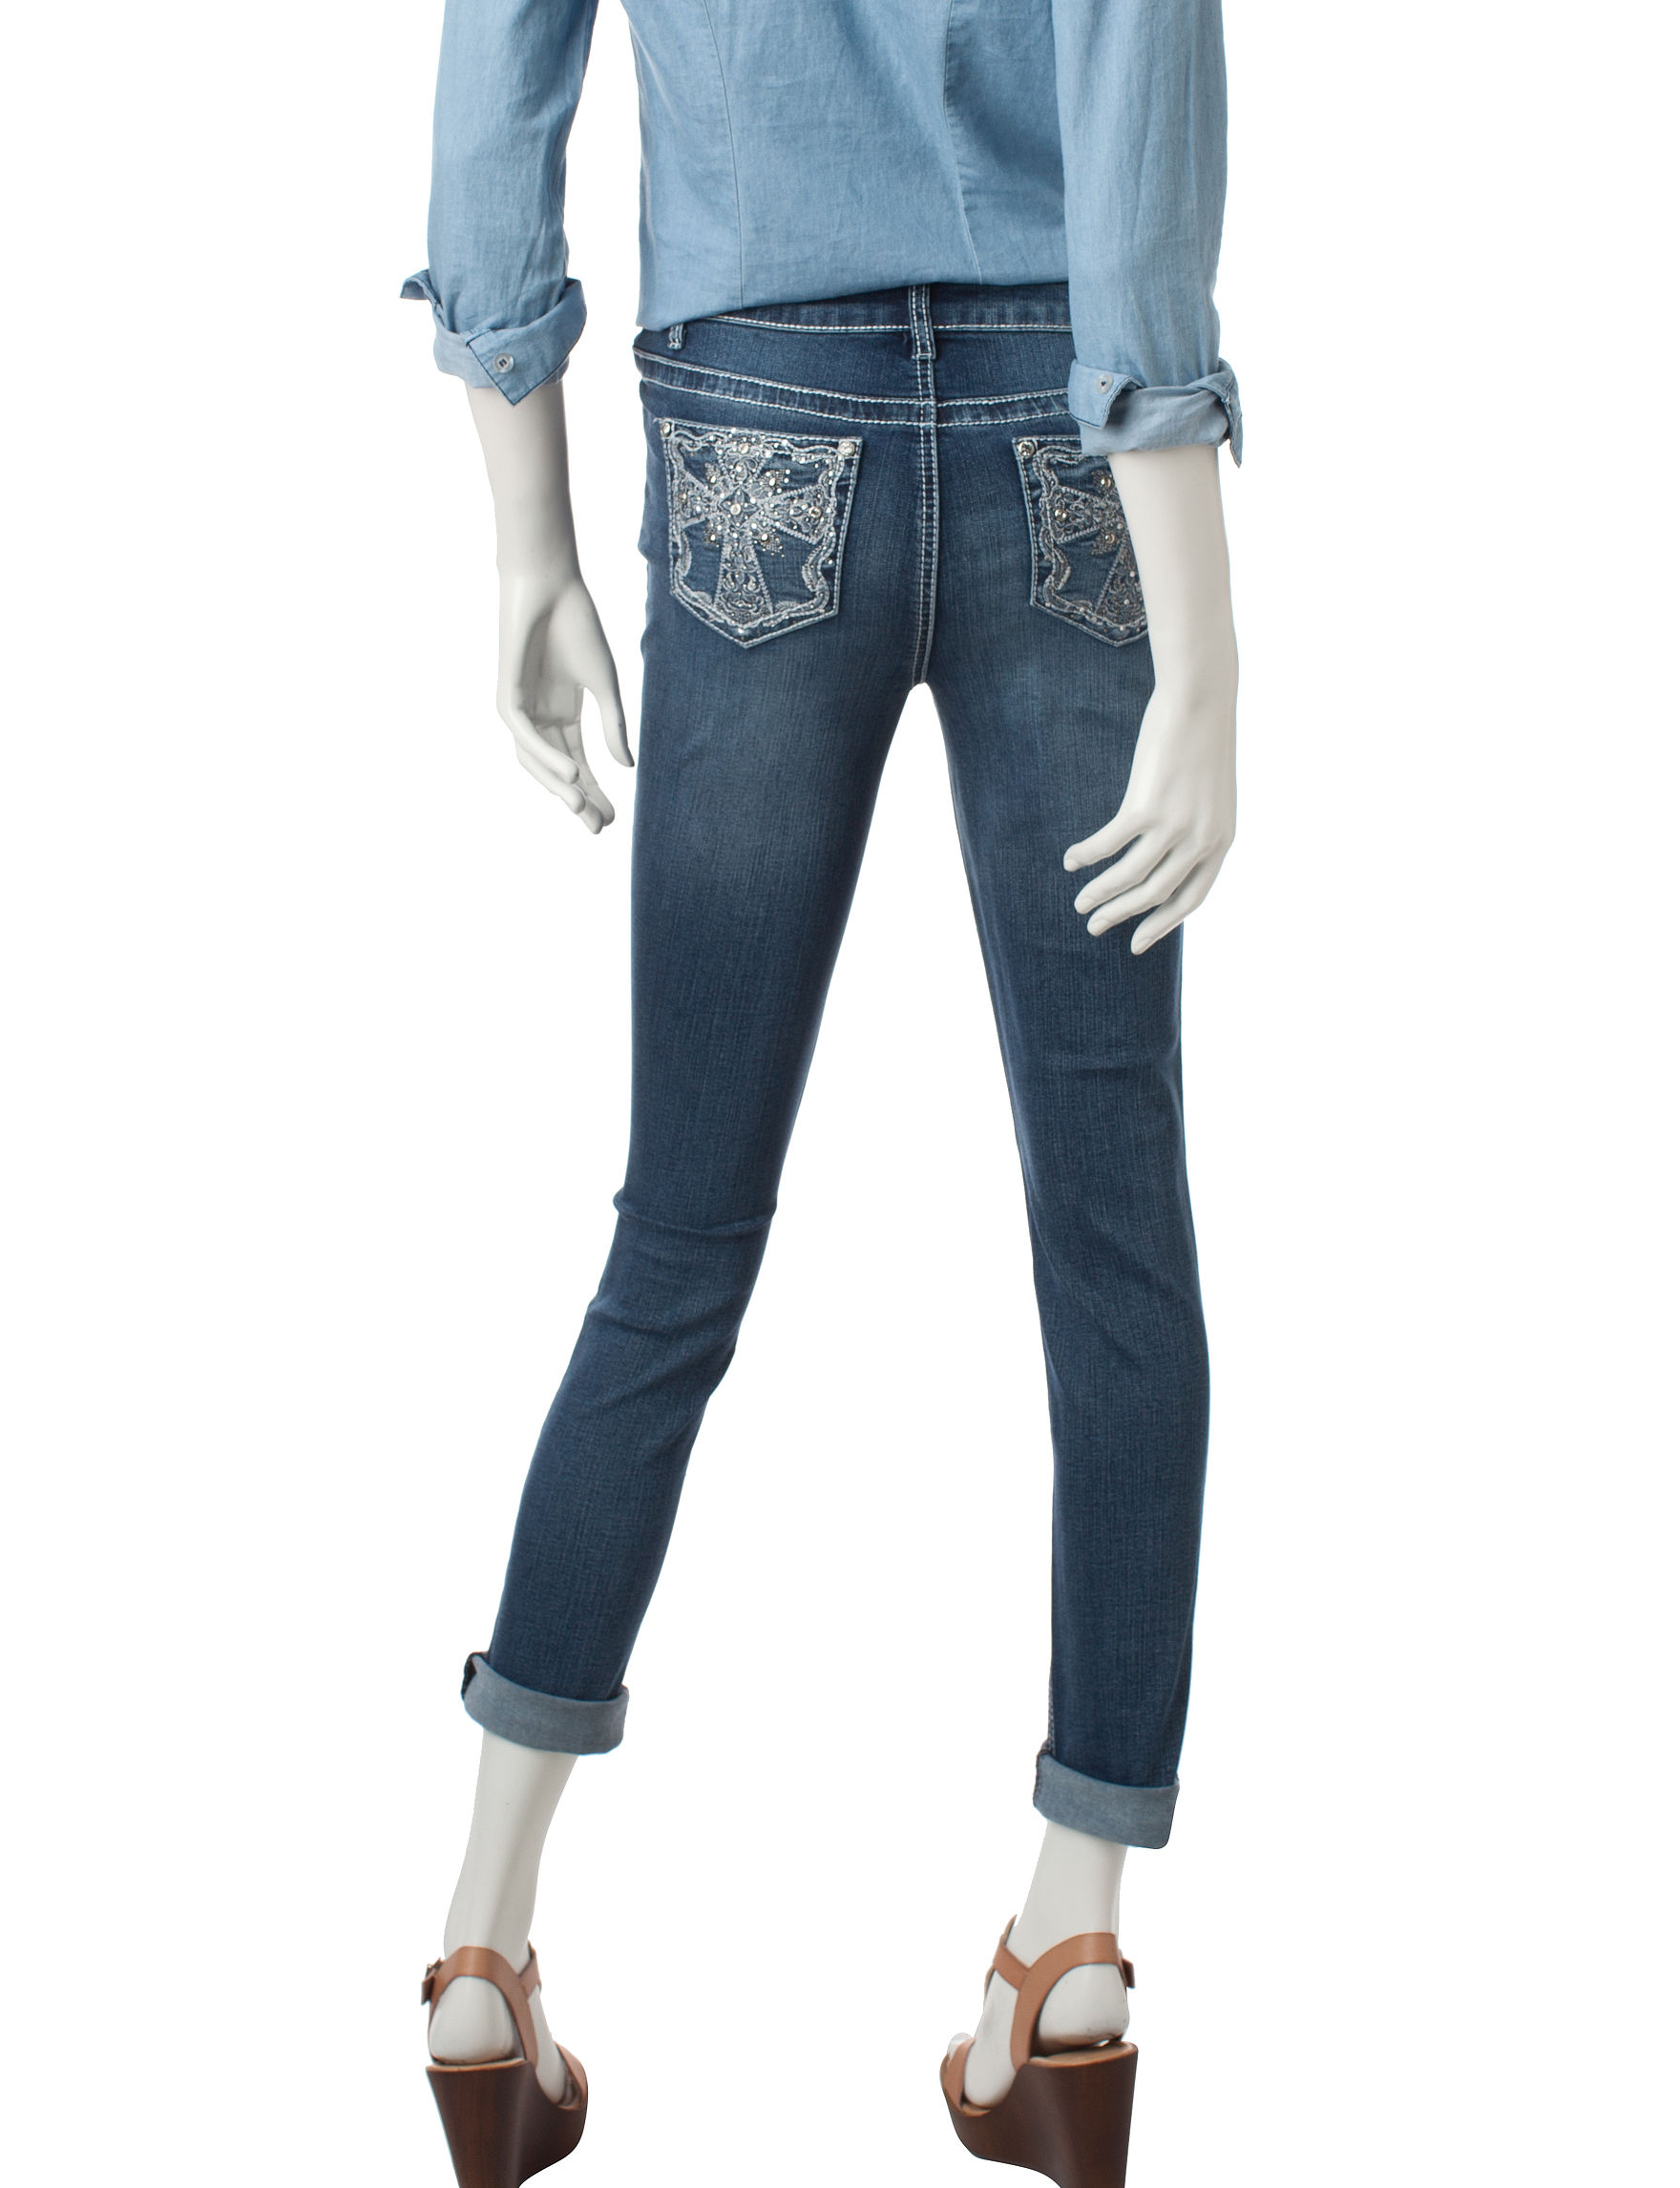 Earl Jean Medium Blue Skinny